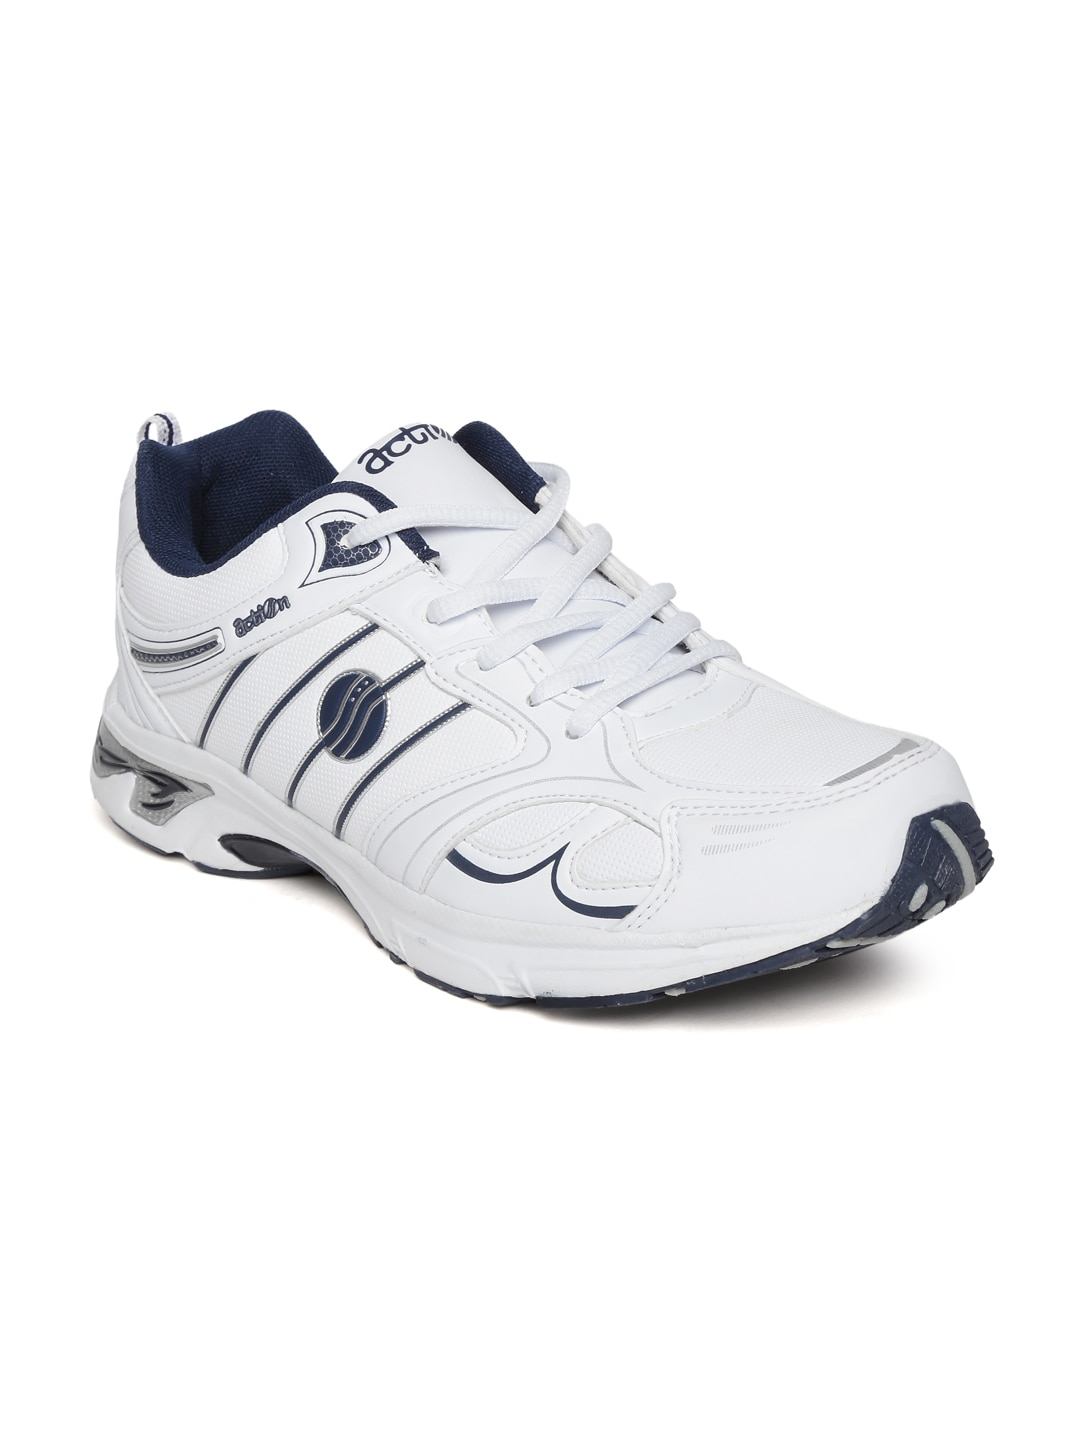 How to Buy Sports Shoes